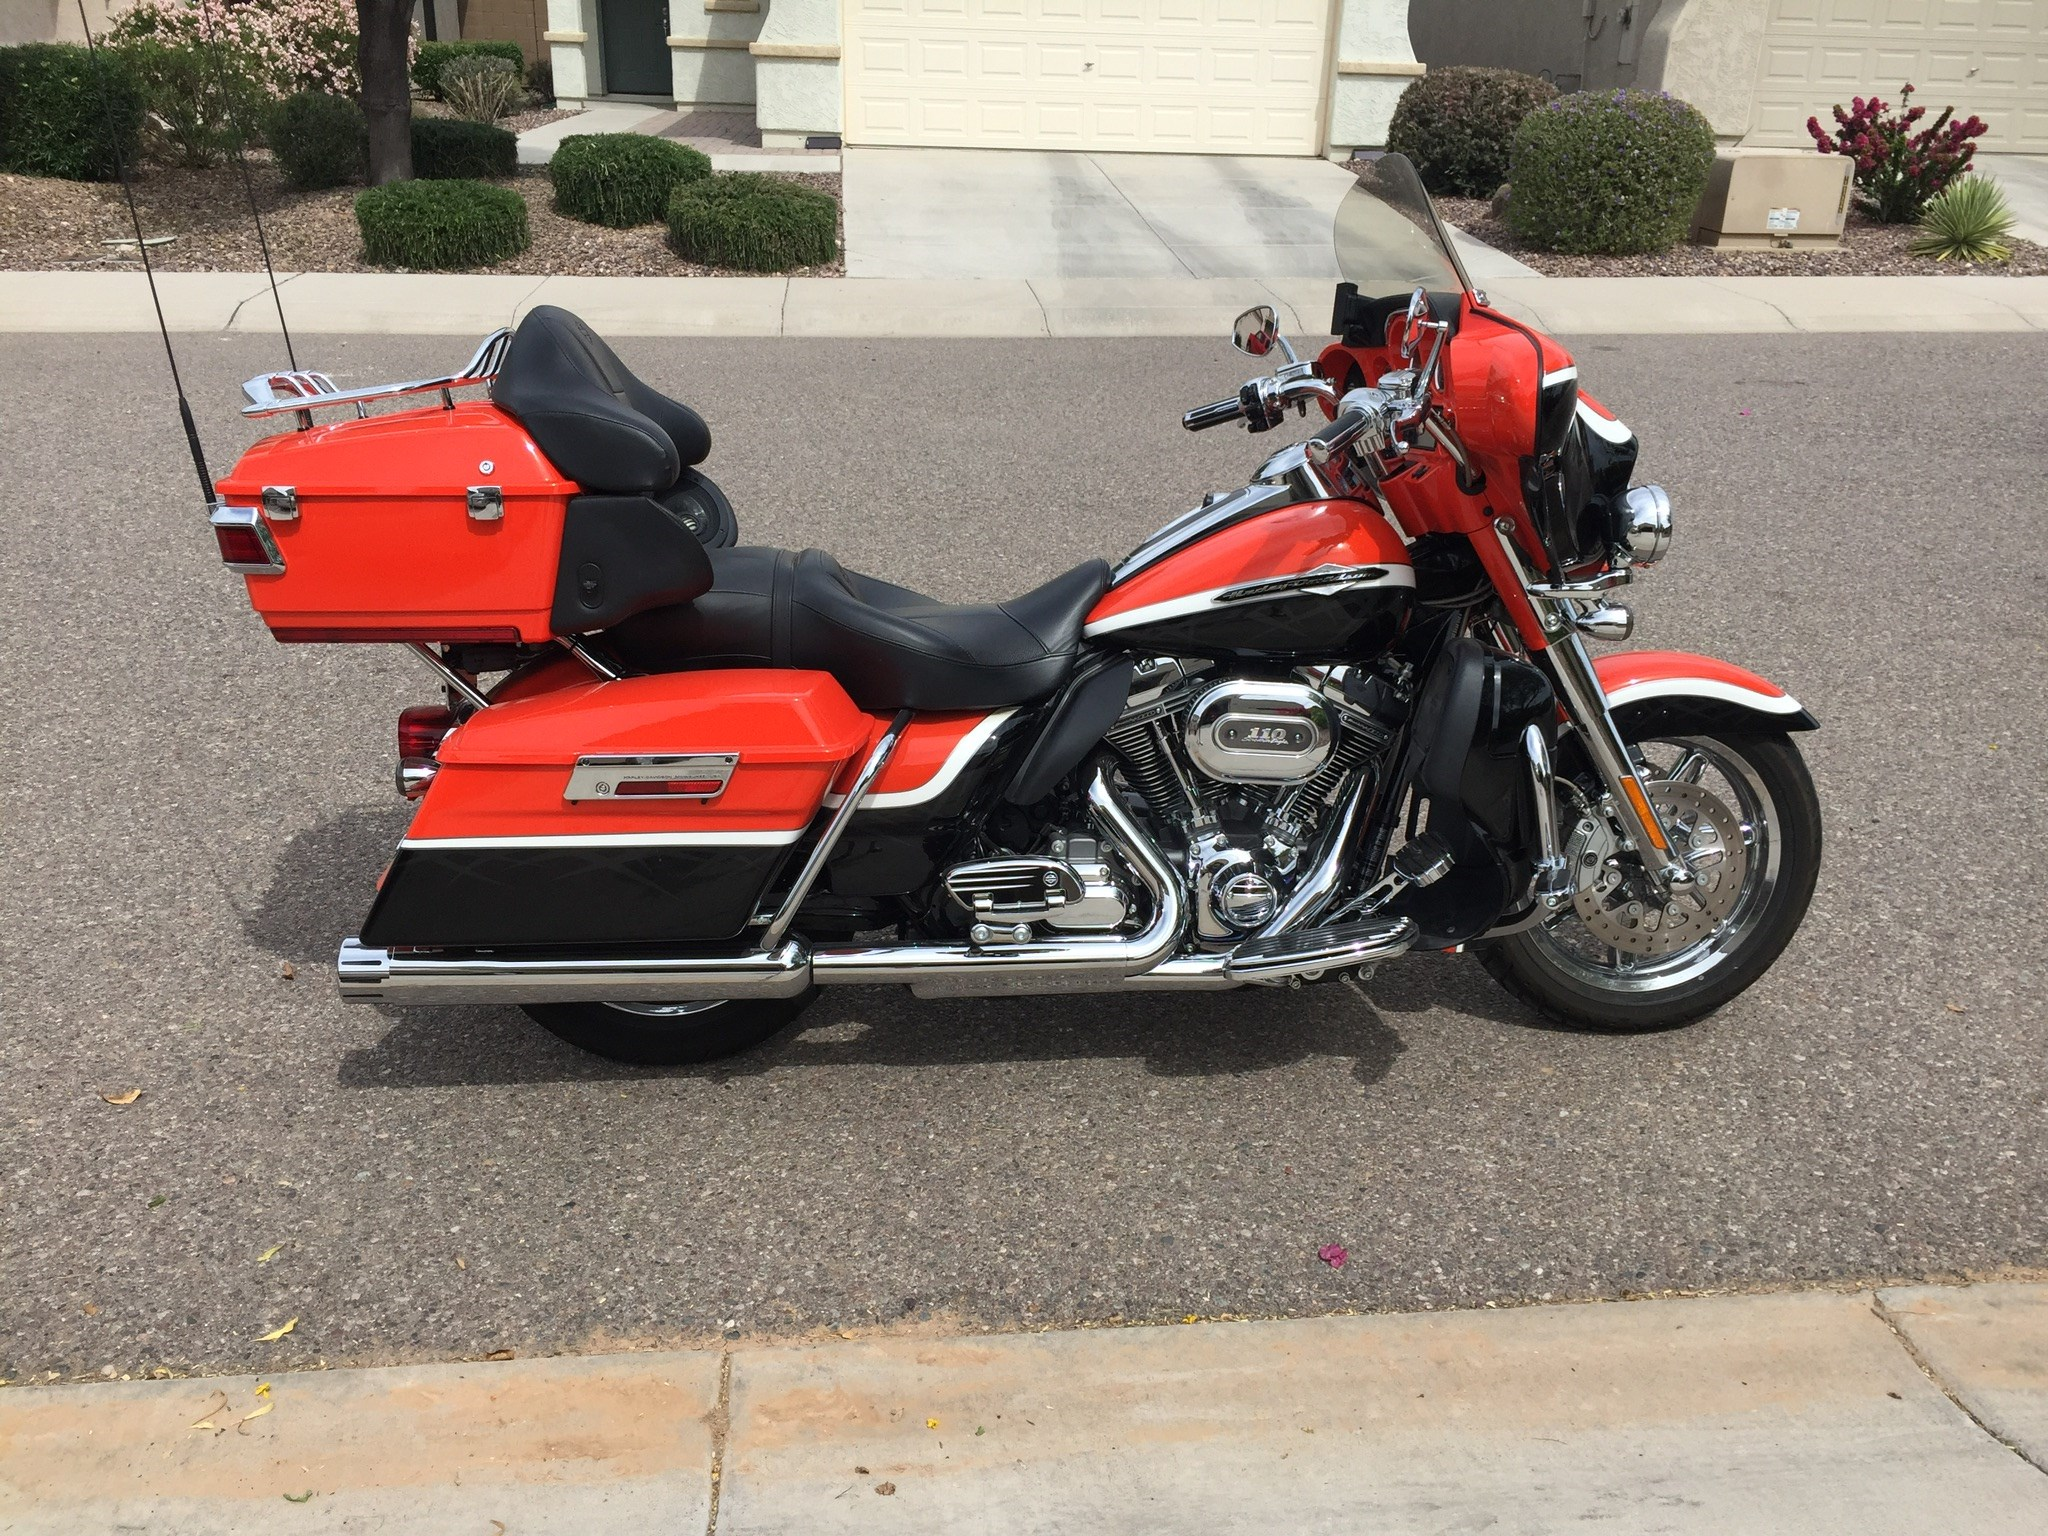 2012 harley davidson flhtcuse7 cvo ultra classic electra glide orange florence arizona. Black Bedroom Furniture Sets. Home Design Ideas